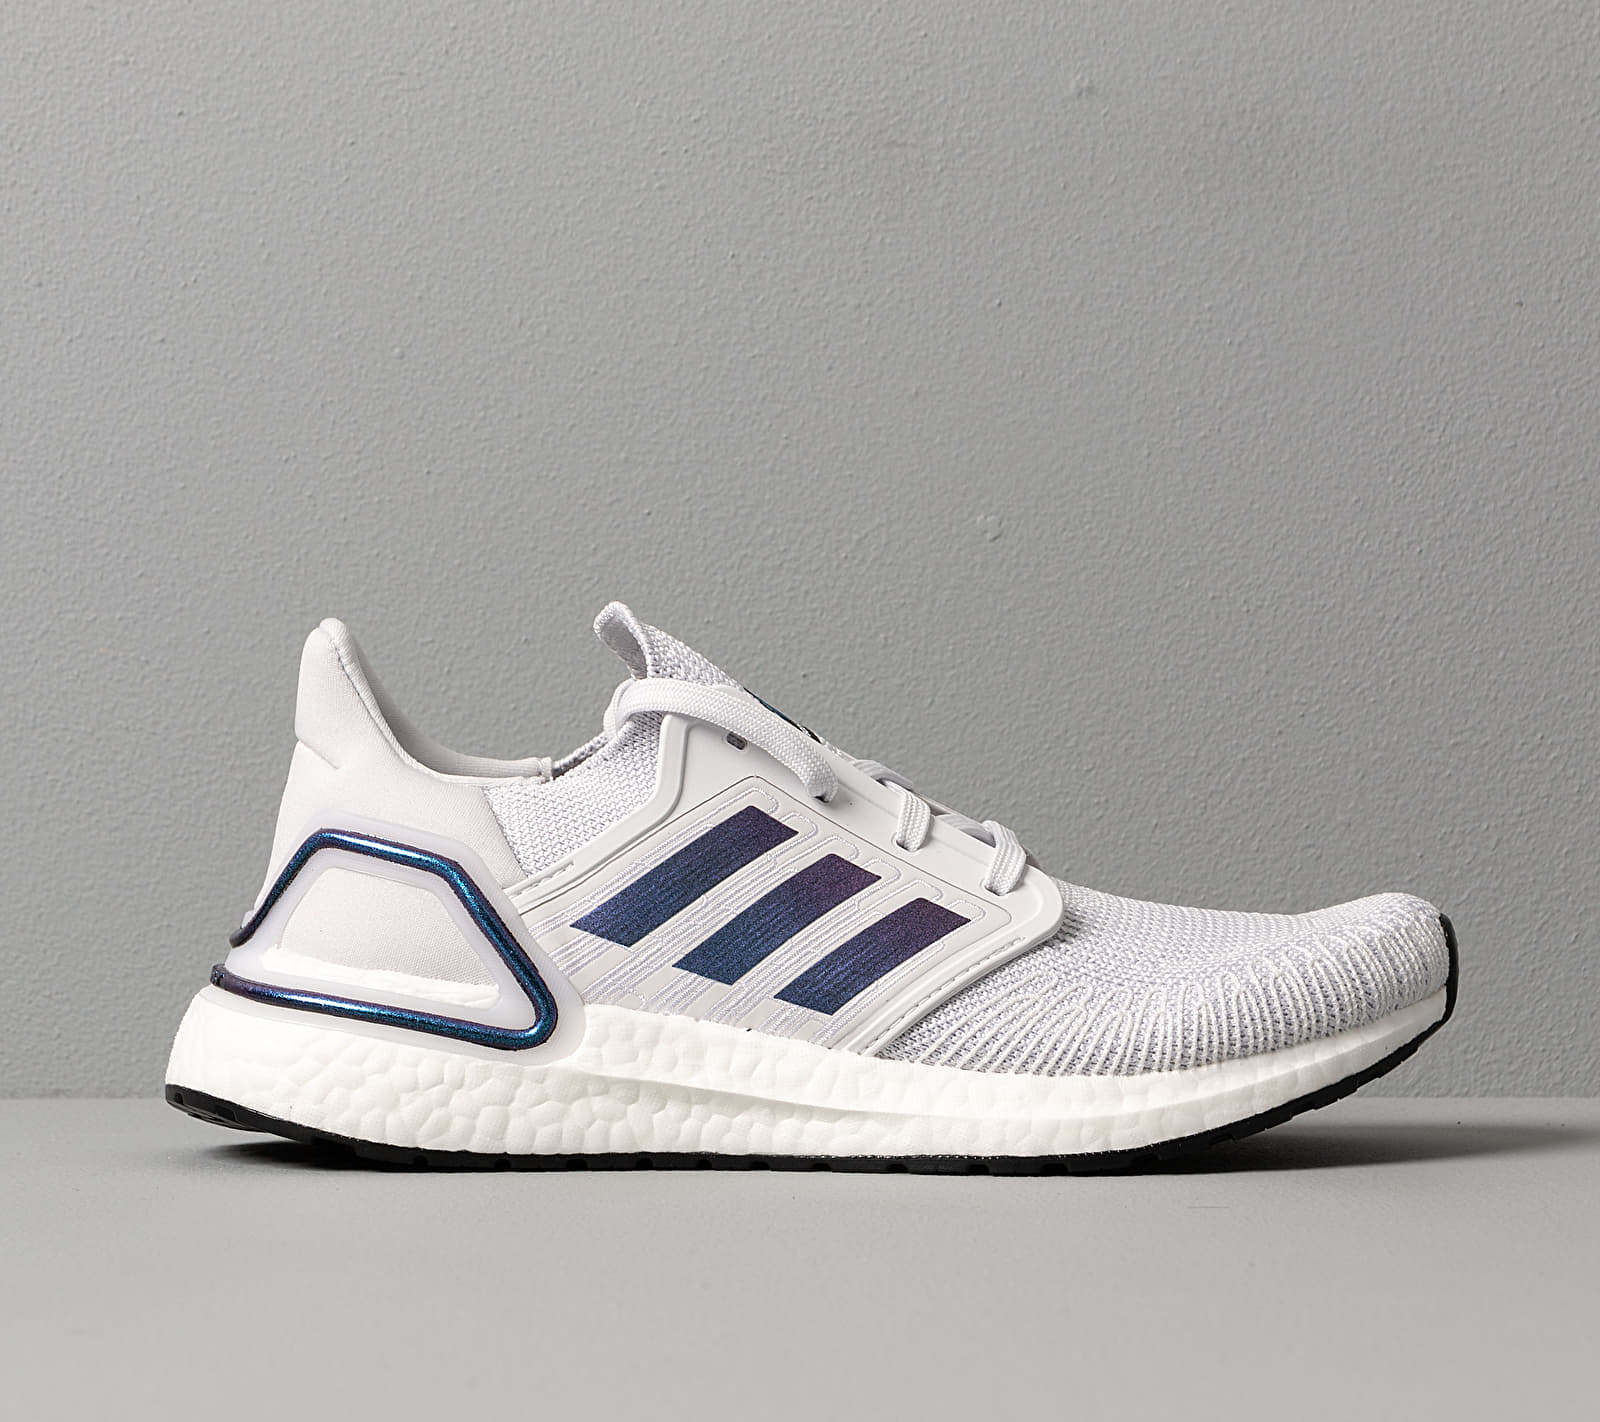 adidas UltraBOOST 20 W Dash Grey/ Blue Vime/ Core Black, Gray